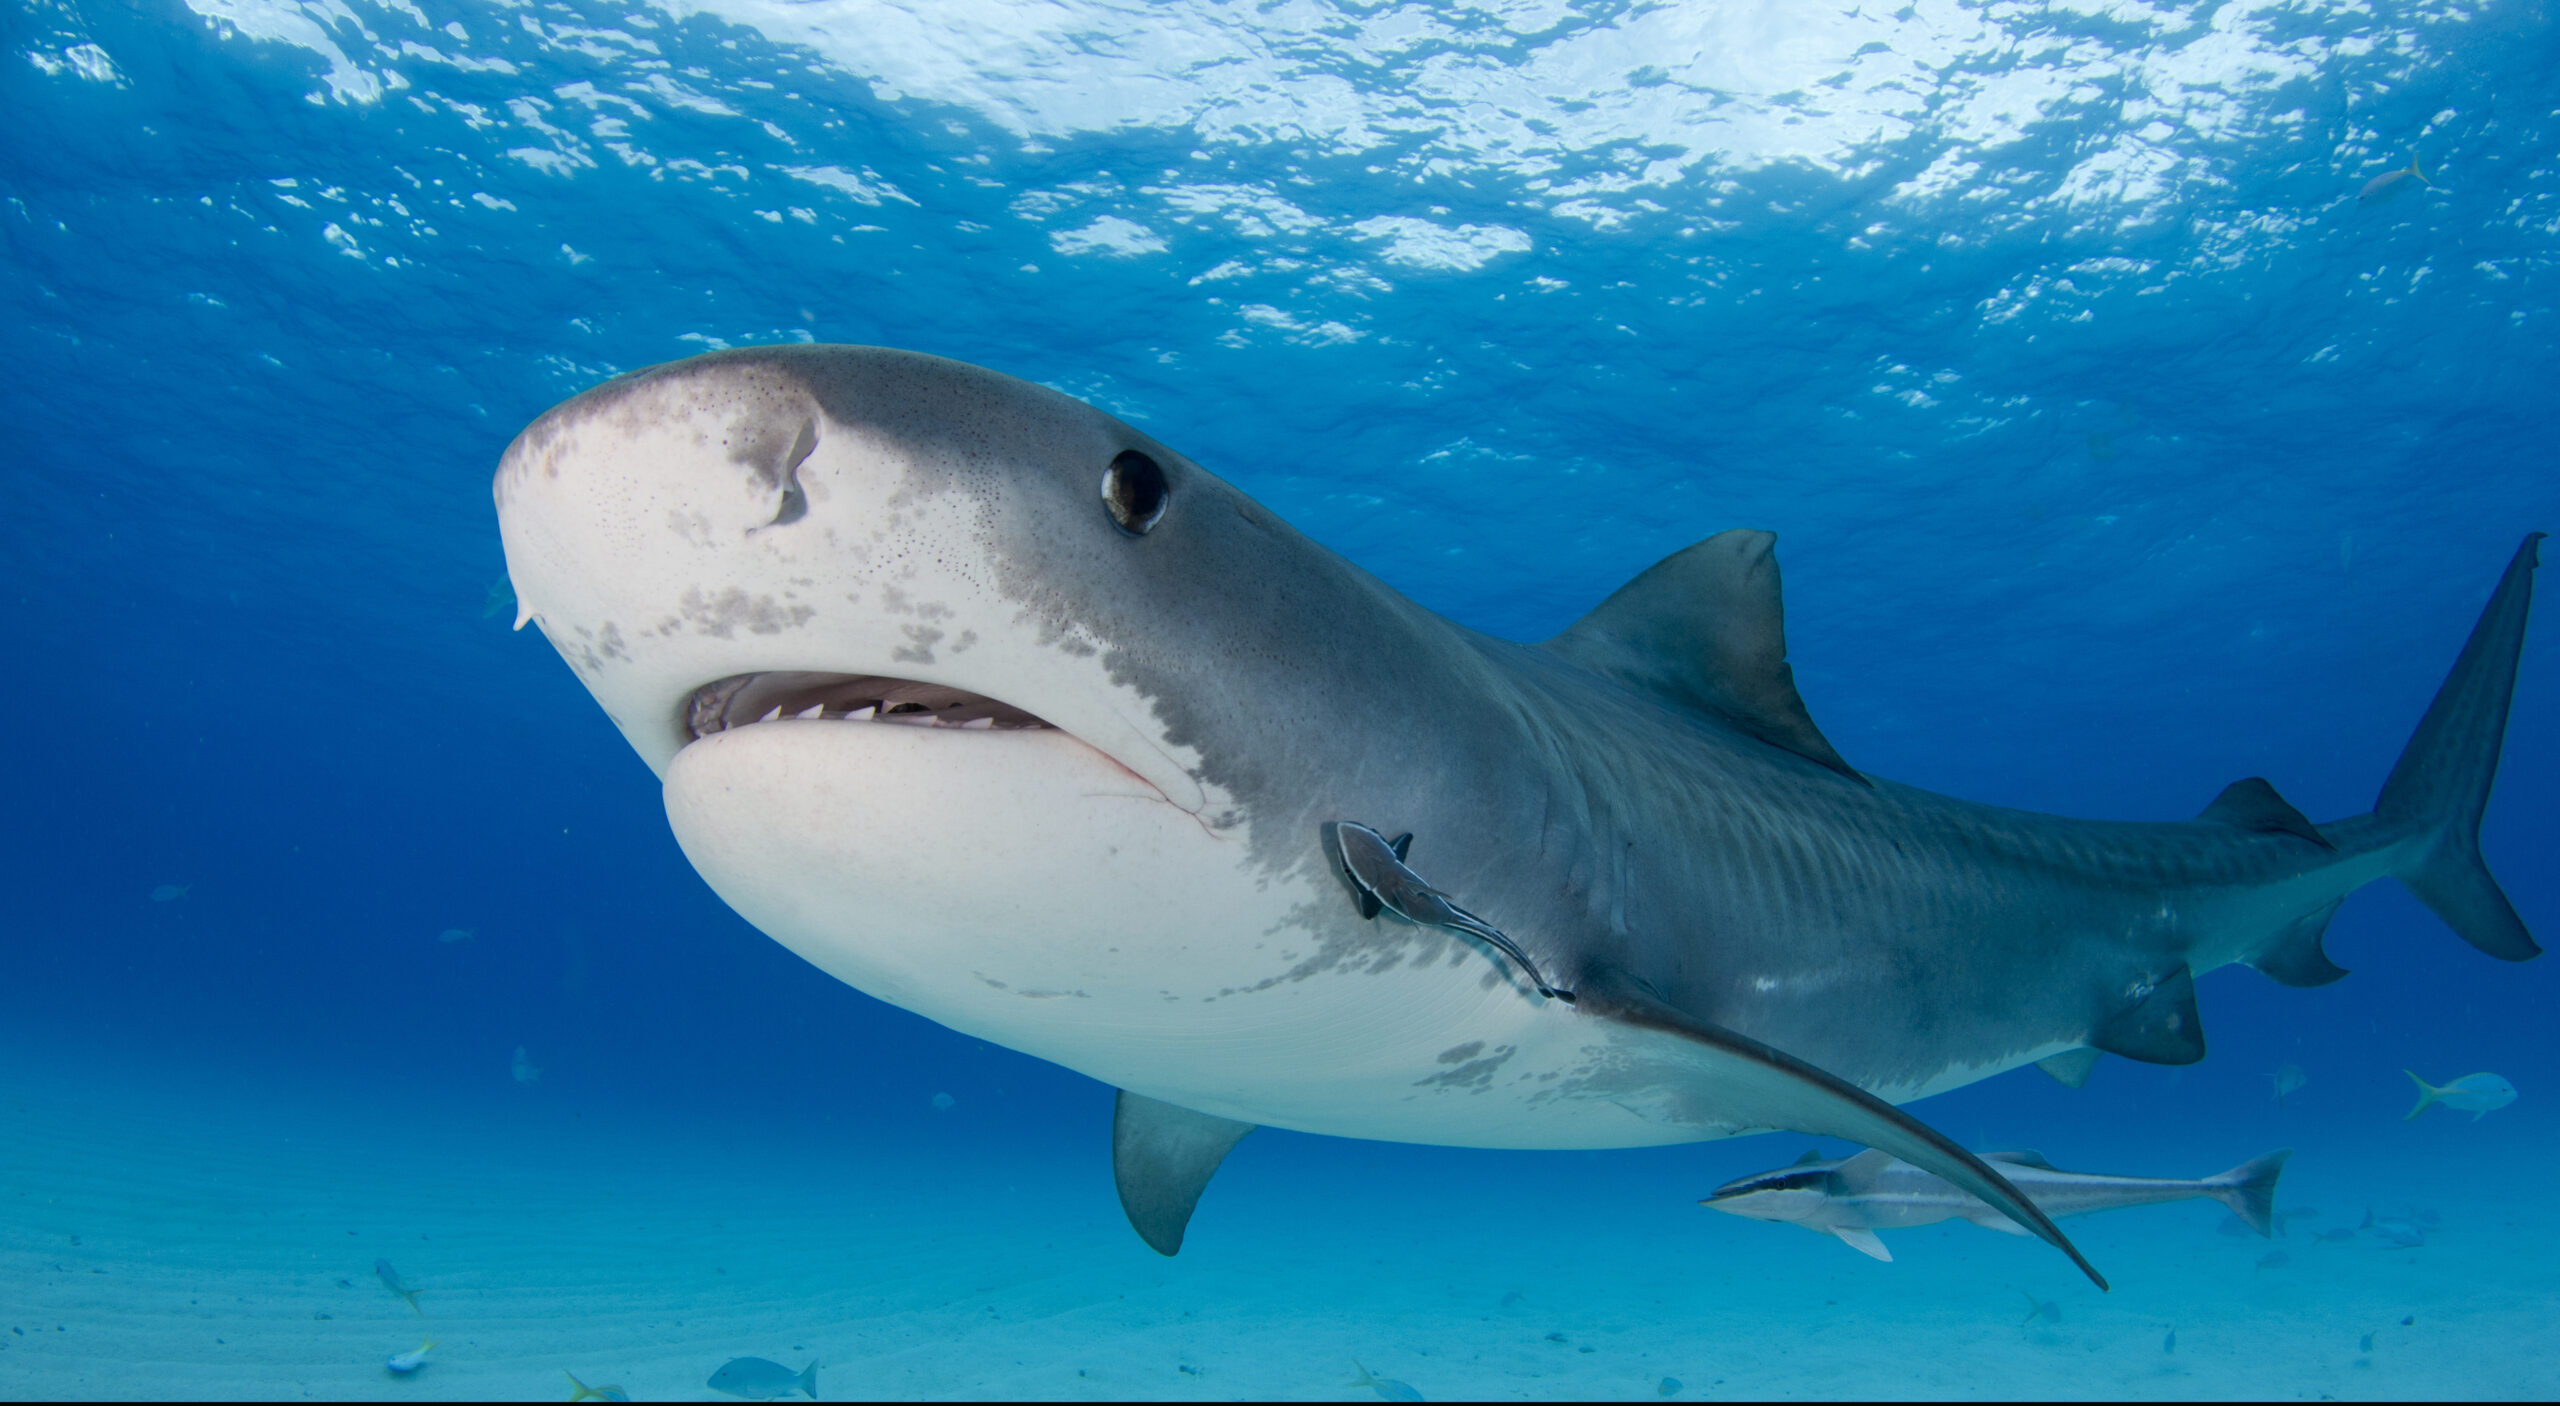 Hawaii Passes Landmark Protections for Sharks and Rays